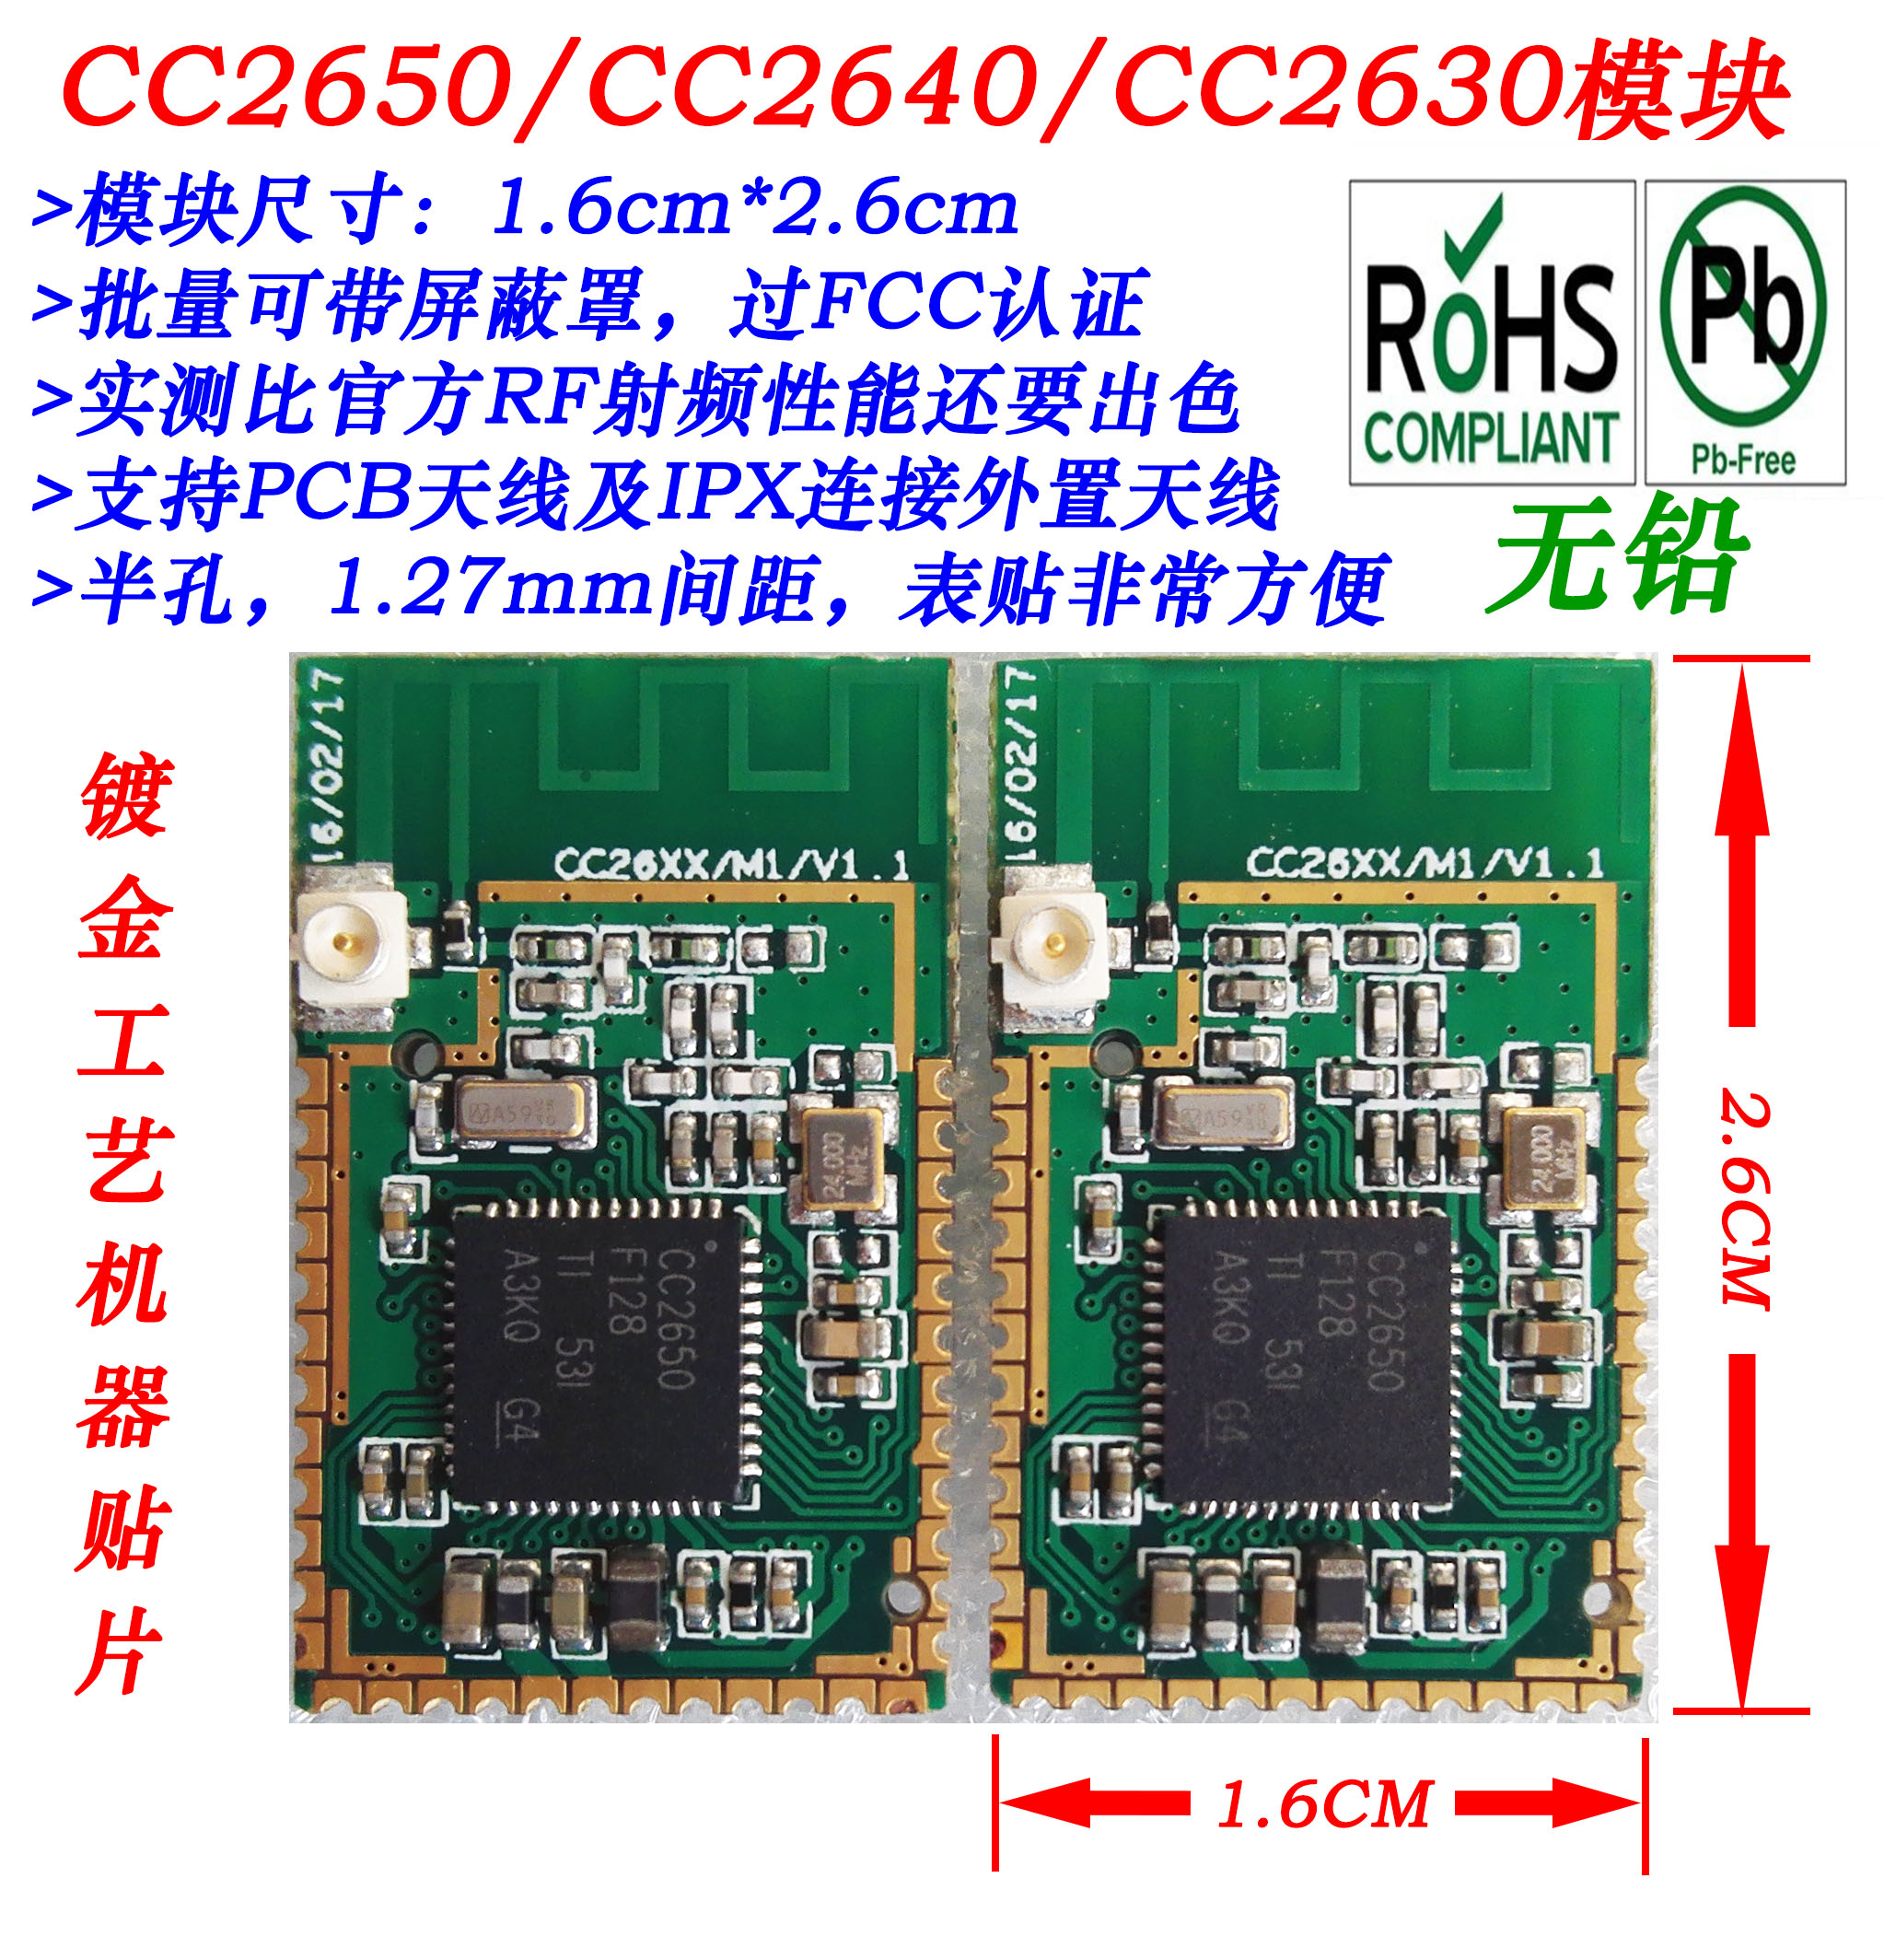 medium resolution of cc2640 cc2630 cc2650 bluetooth module zigbee module cc2640 module in air conditioner parts from home appliances on aliexpress com alibaba group